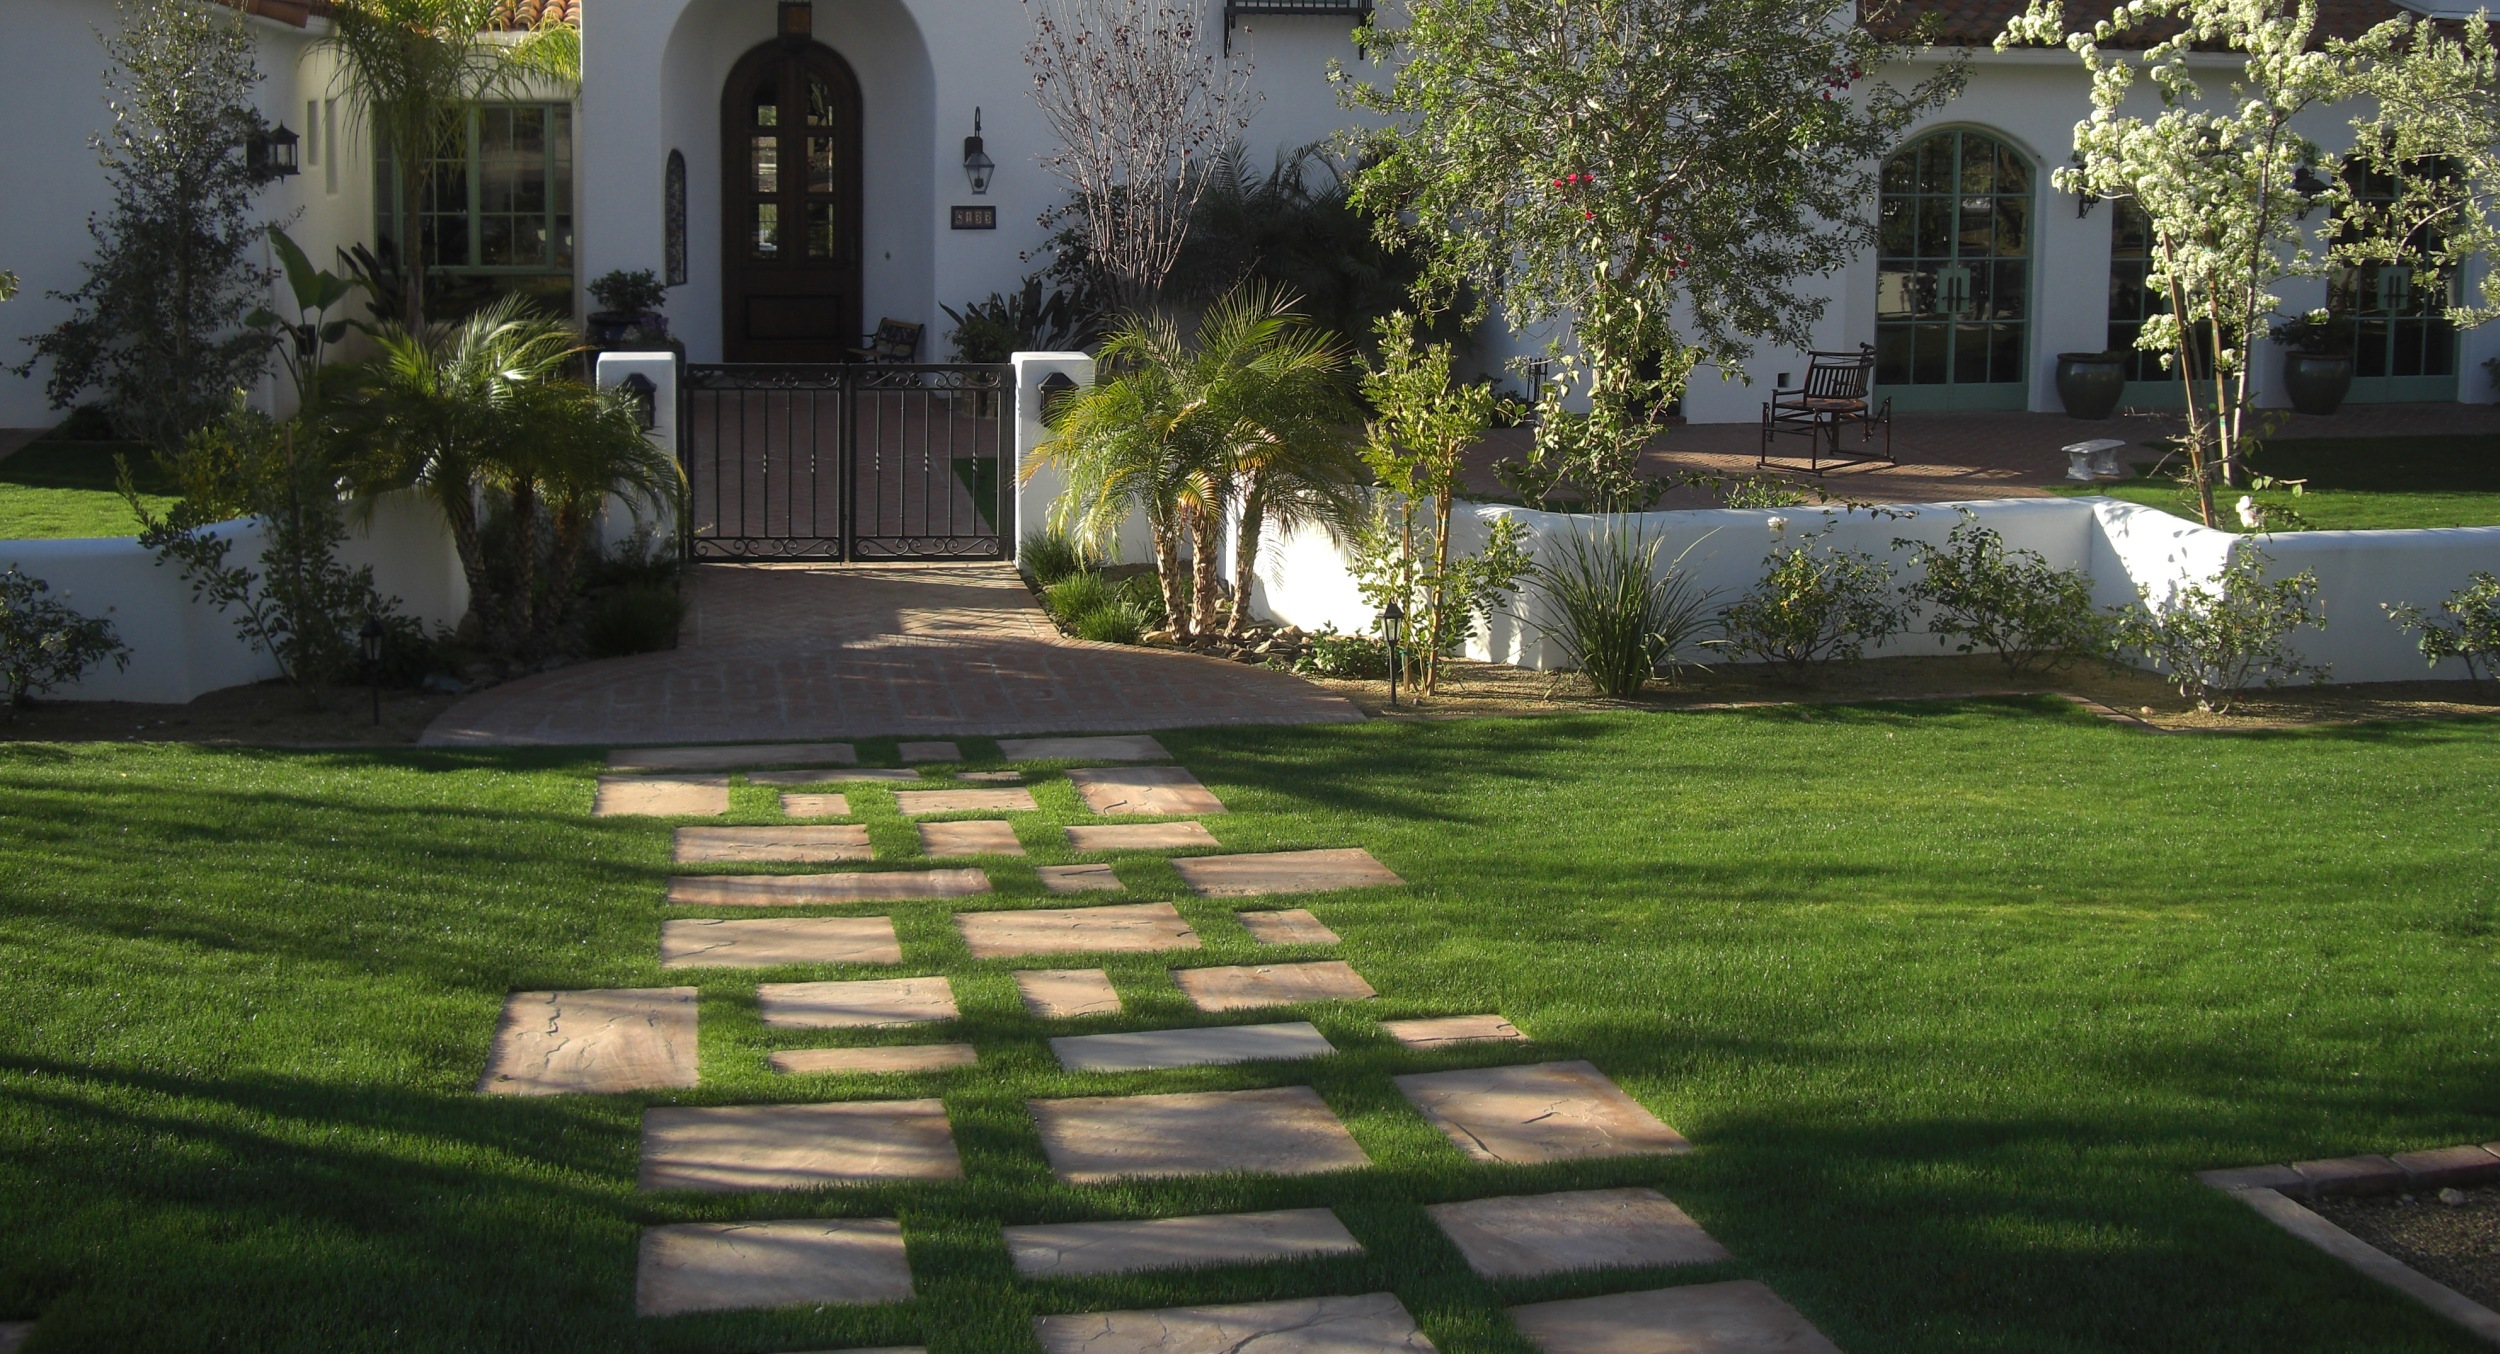 We loved helping this client turn their property into a lush oasis. Expansive Paradise Valley lawns cover a great deal of this large residential property.